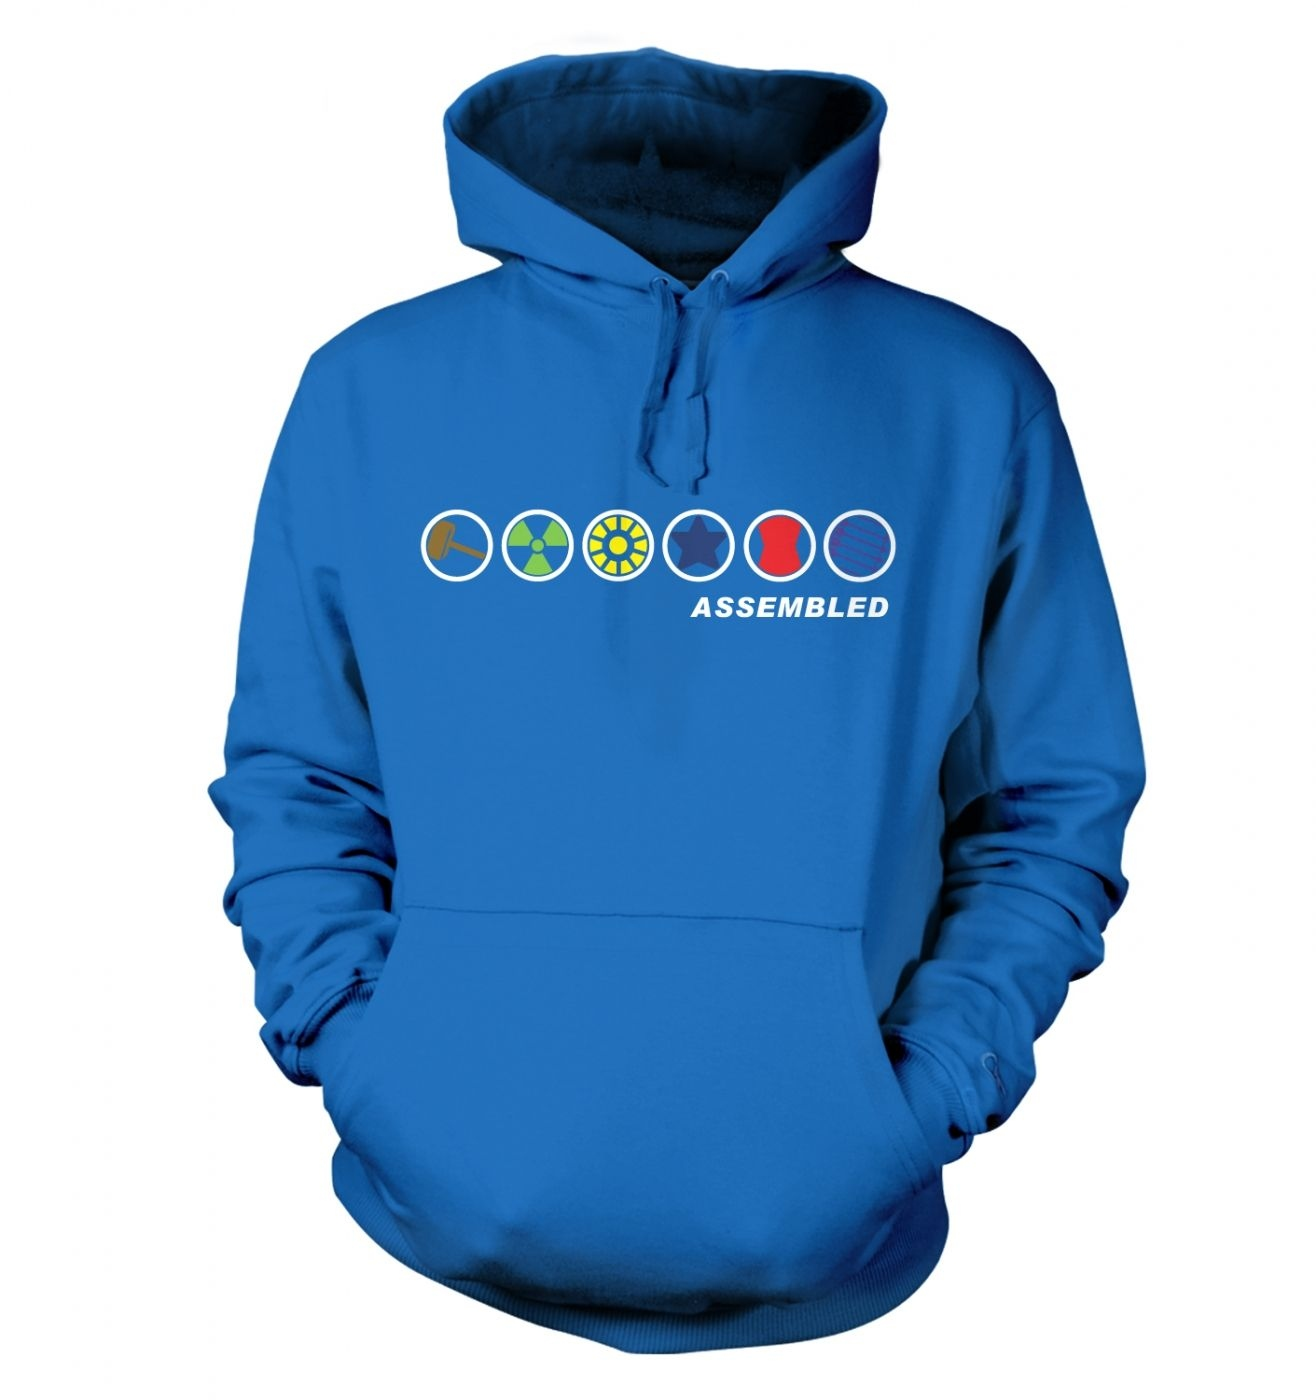 Assembled In A Row hoodie